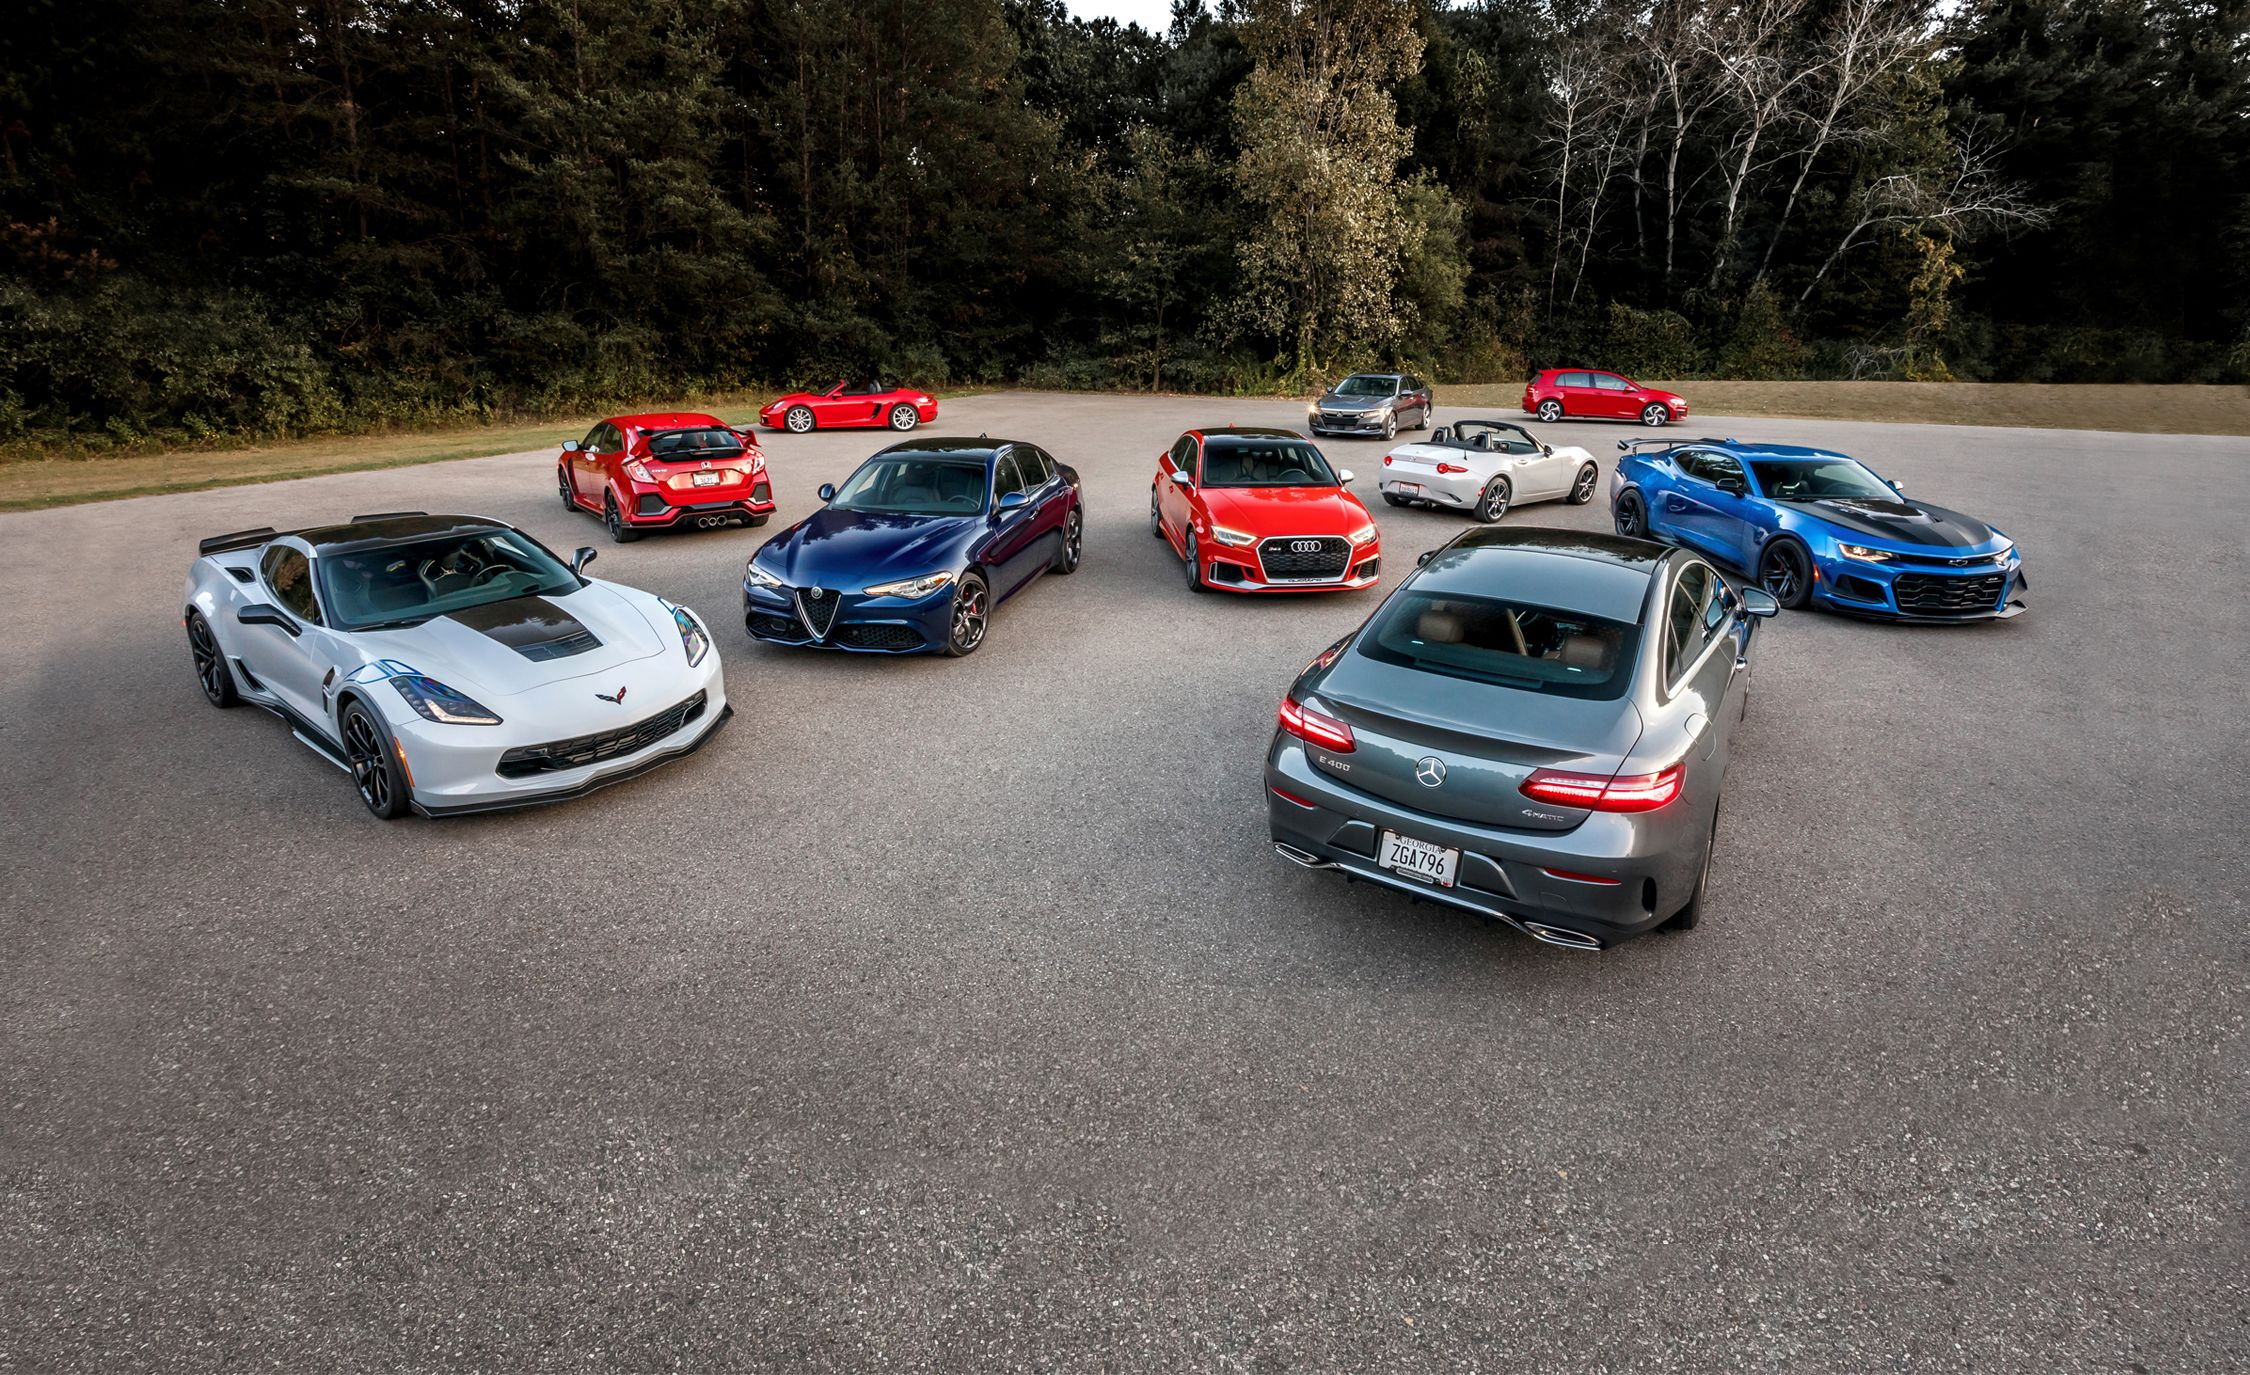 2018 10best cars the best cars for sale in america today